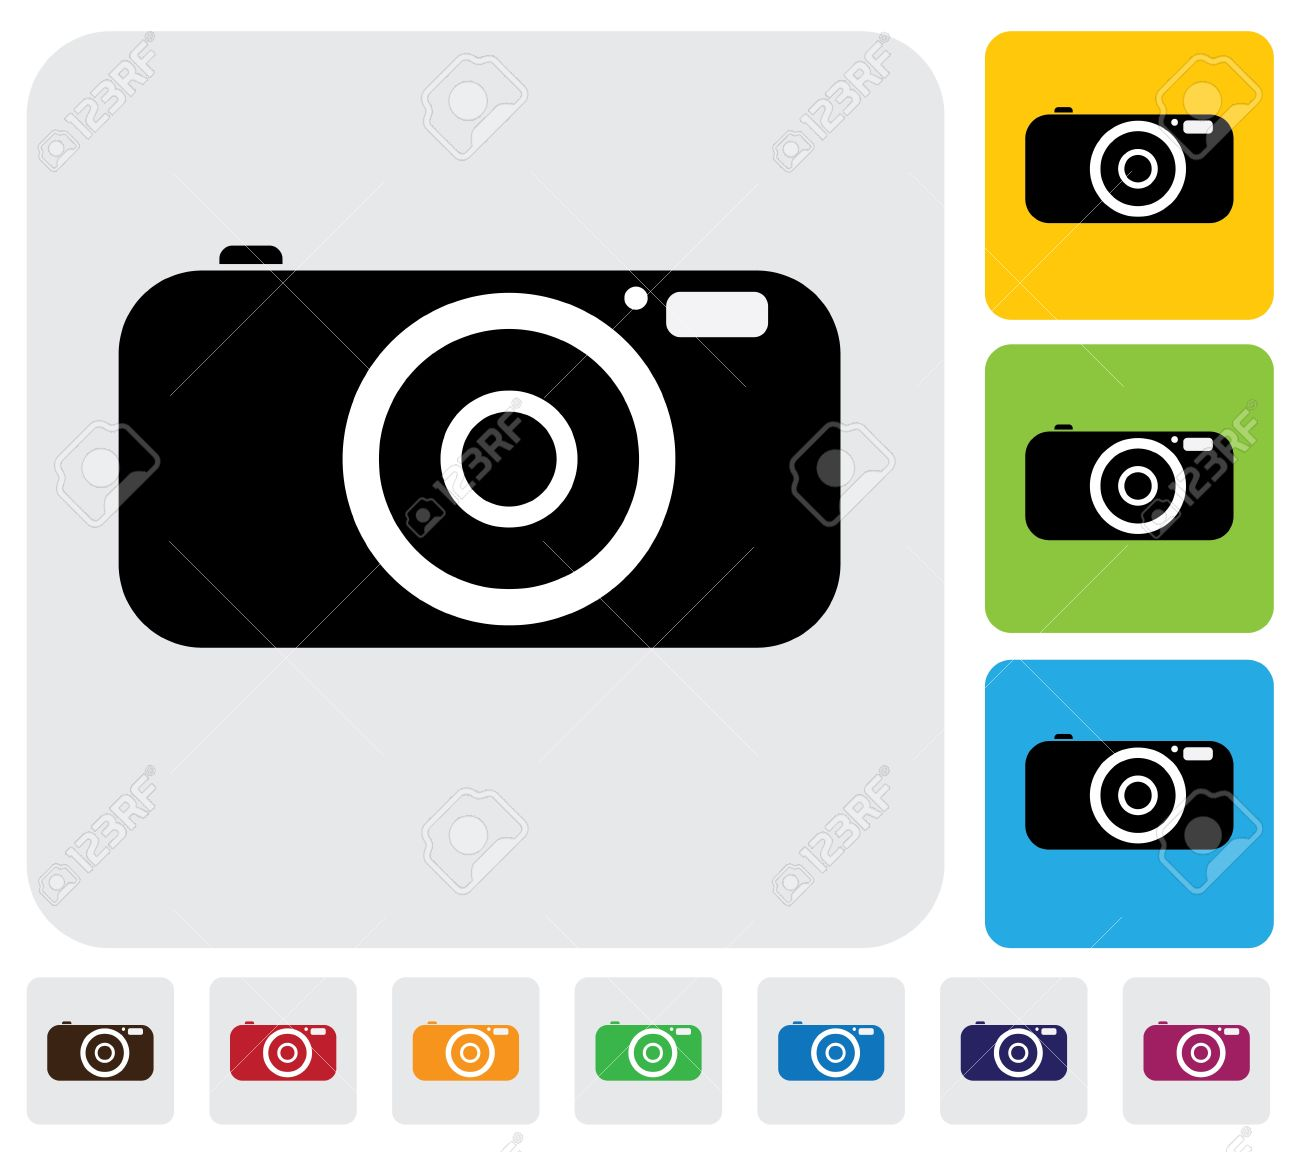 digital camera or point and shoot camera- simple graphic  The illustration has simple colorful icons on green,orange   blue backgrounds   is useful for websites,blogs,documents,printing,etc Stock Vector - 20611990